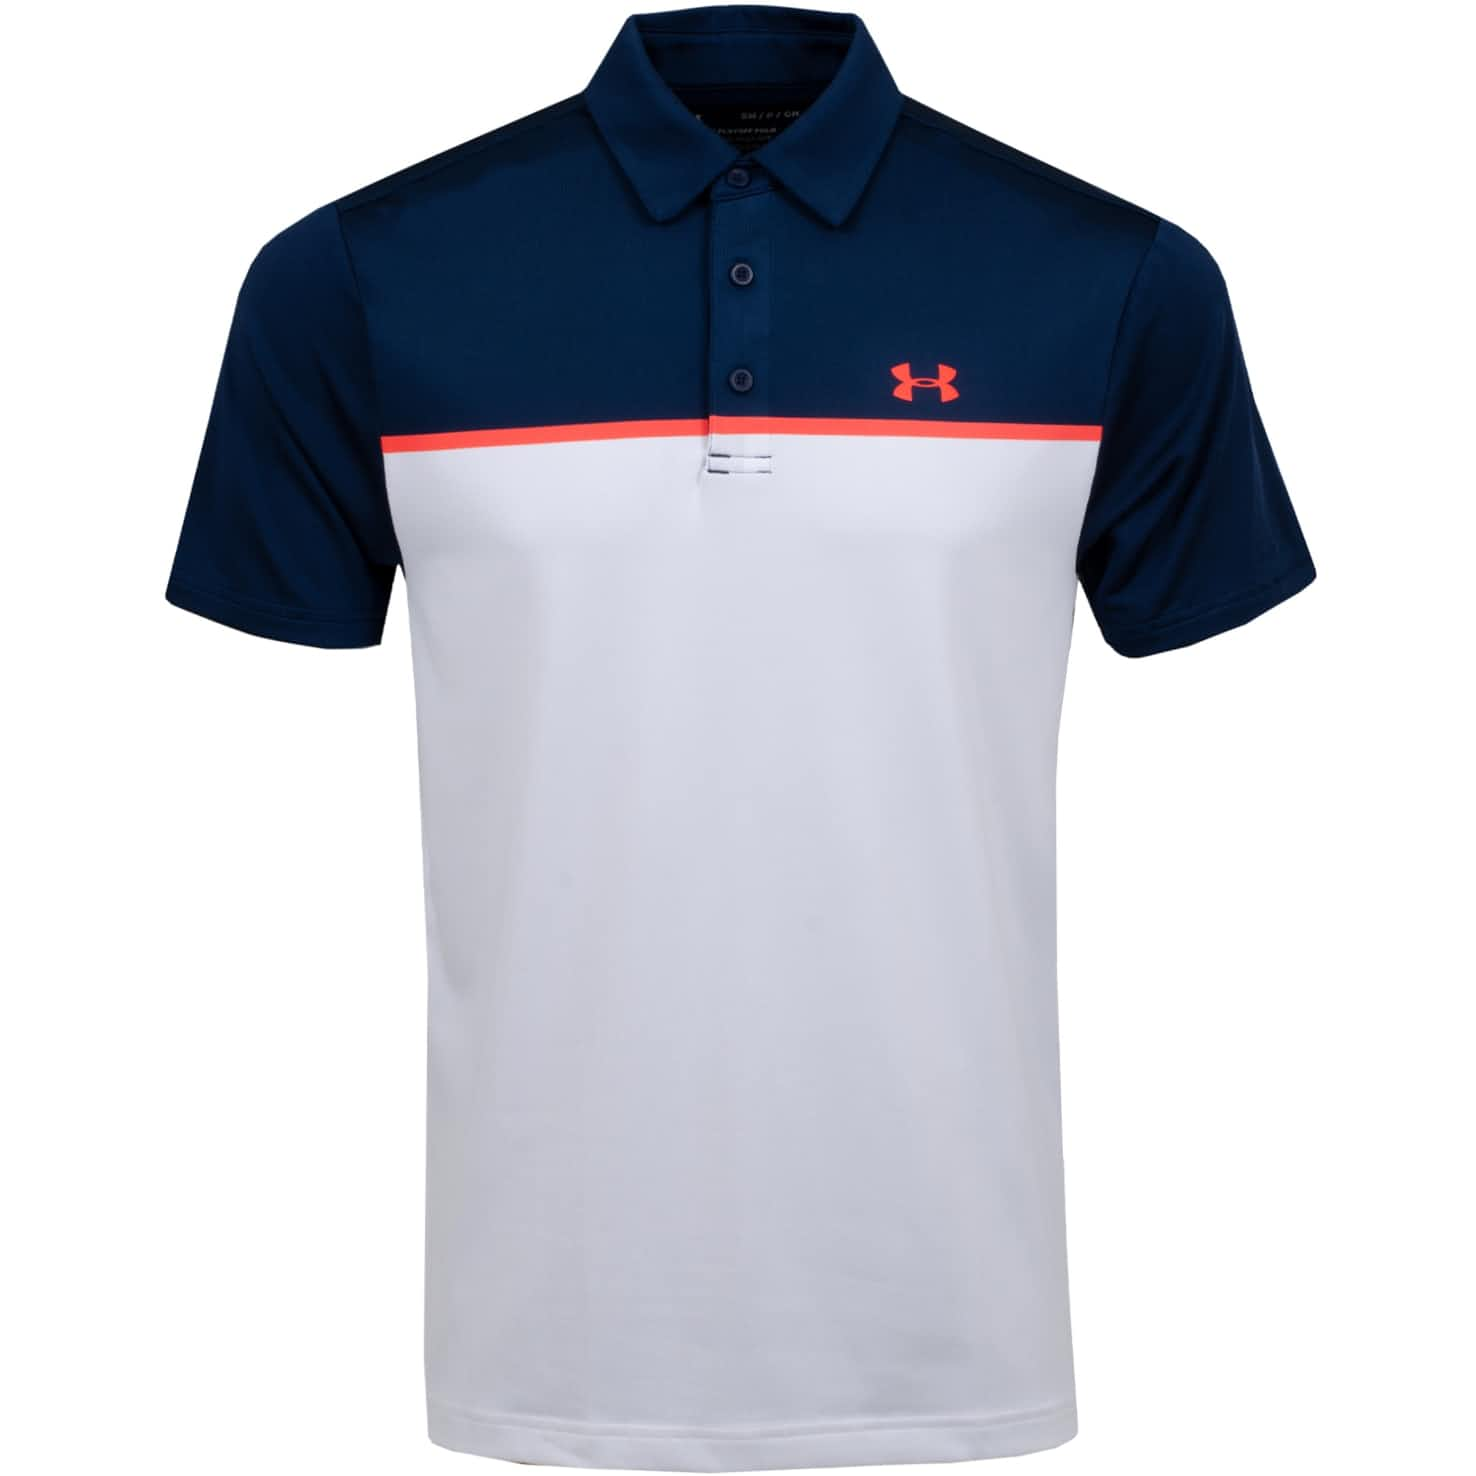 Playoff Polo 2.0 Chest Engineered Academy/White/Beta - SS20